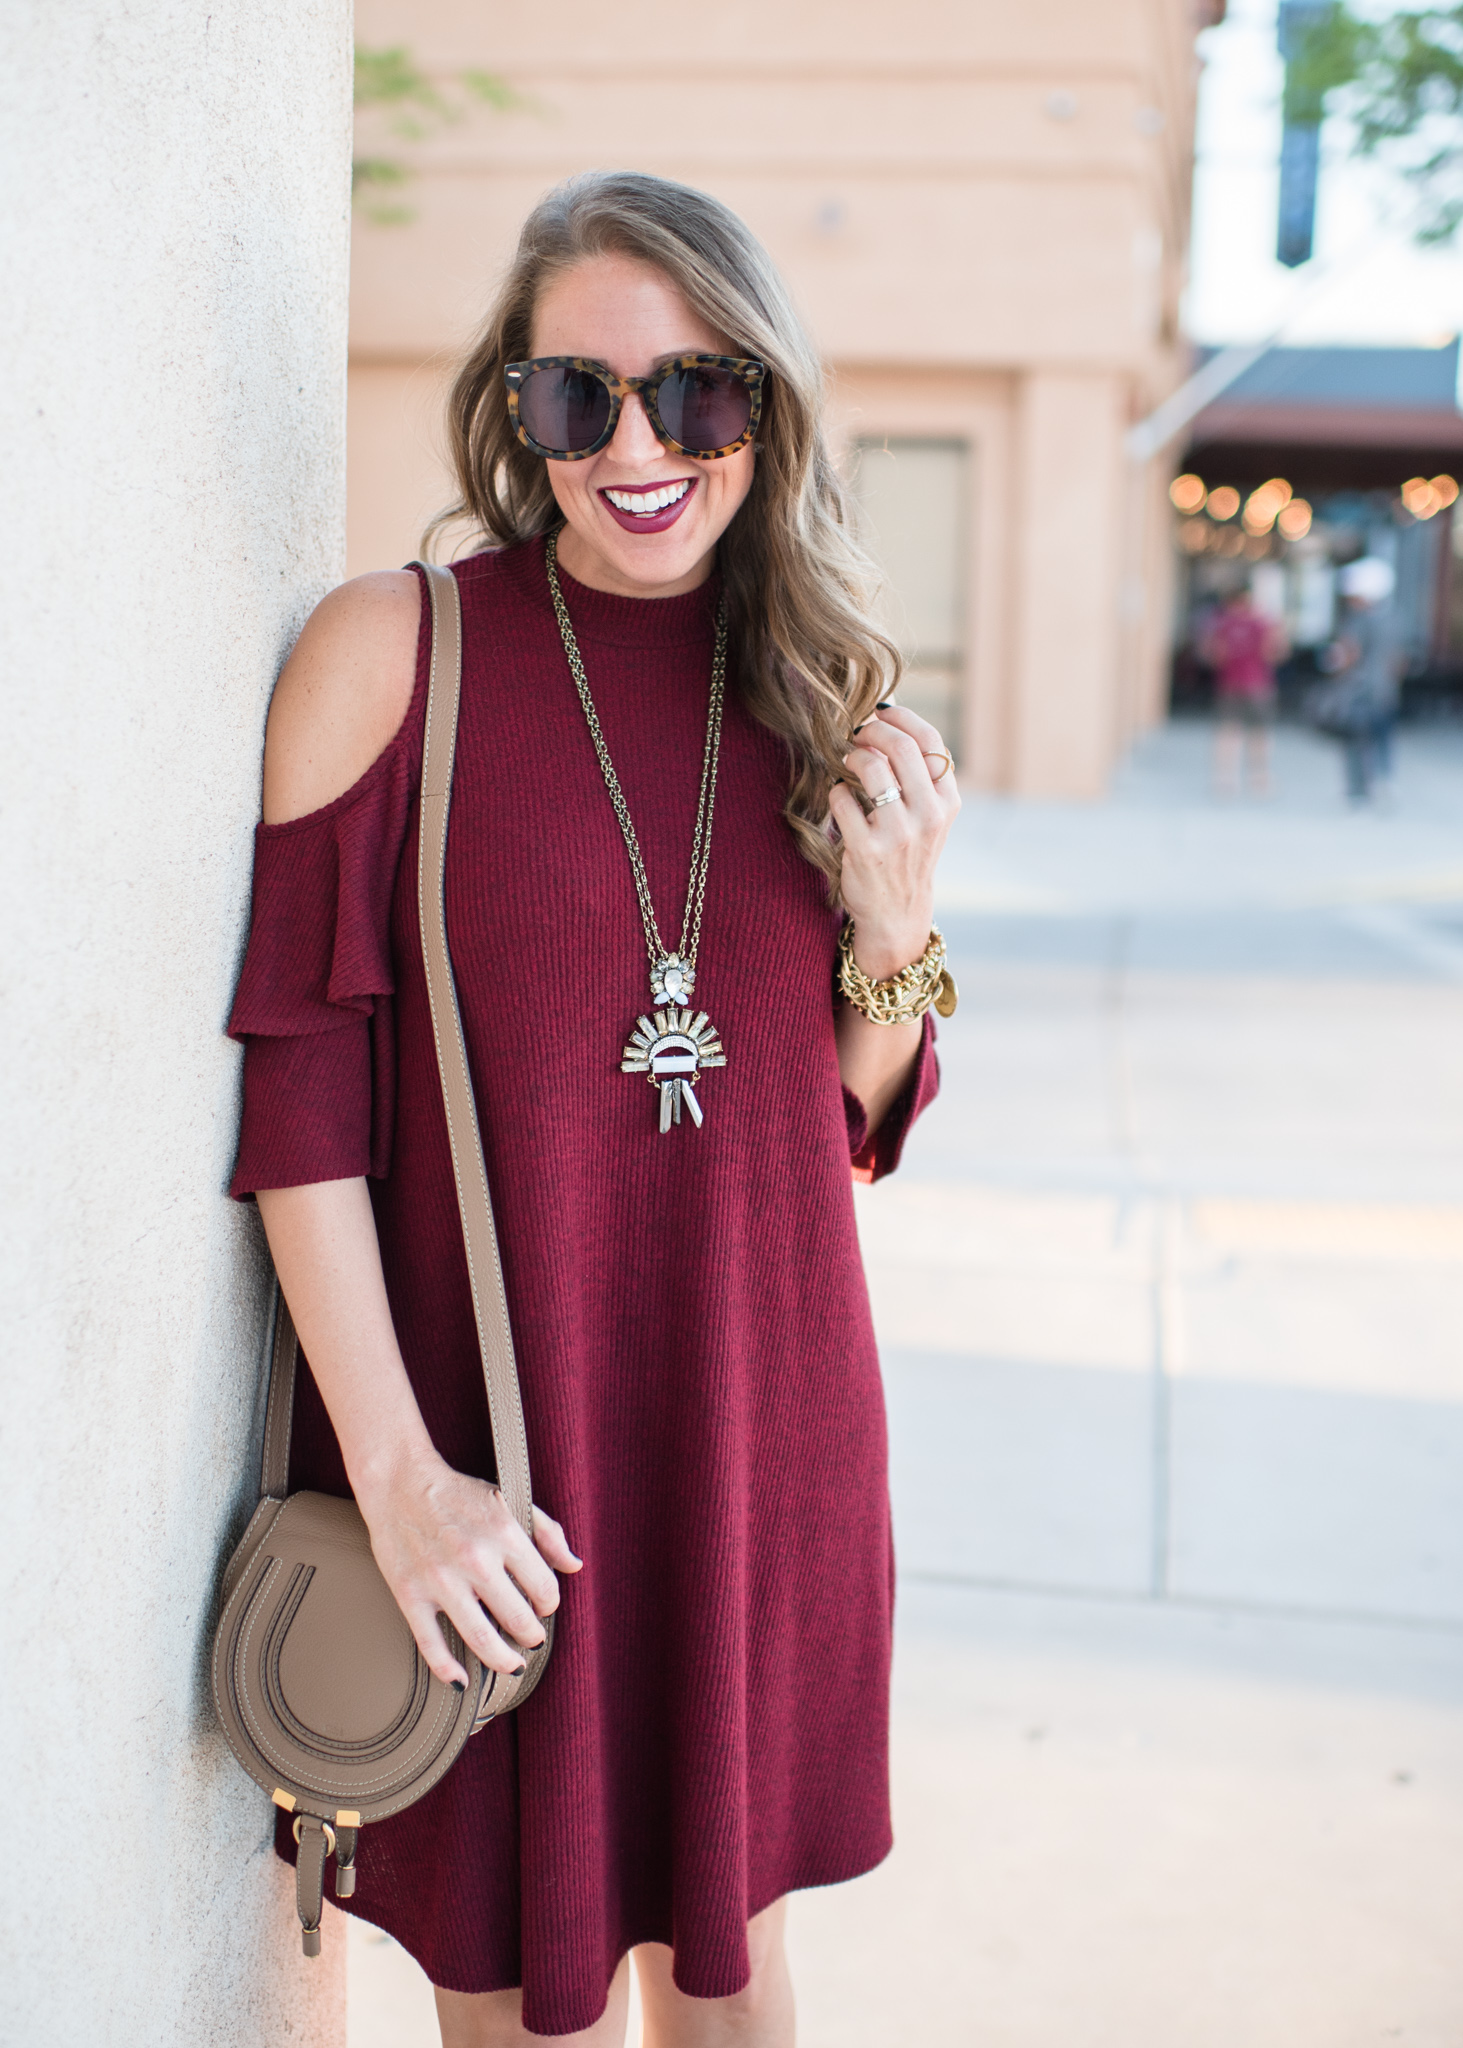 Cold shoulder dress, booties and statement necklace